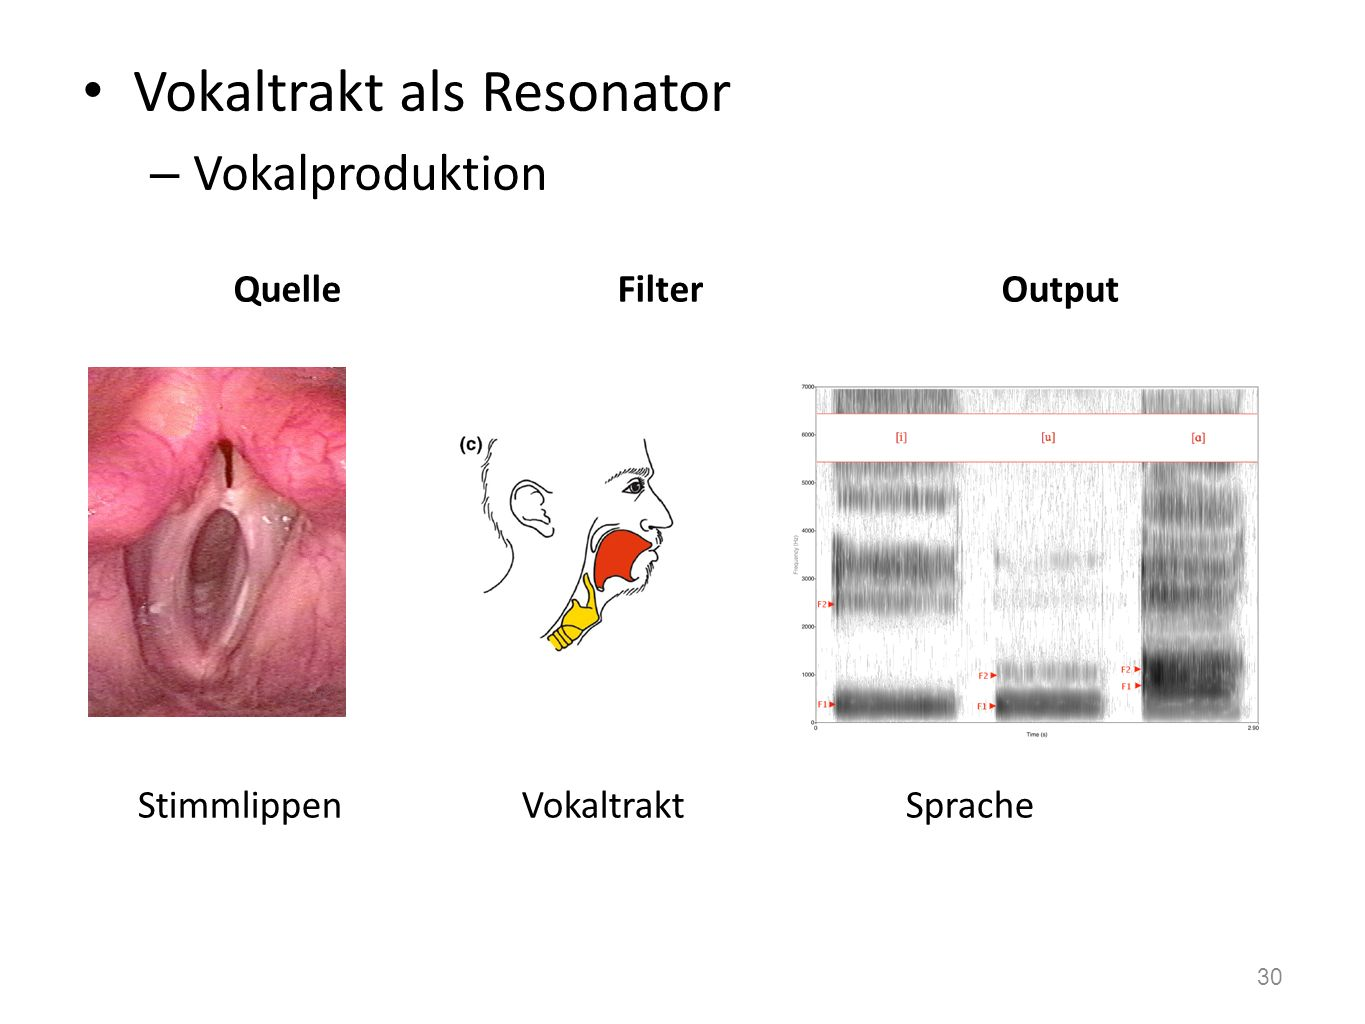 Vokaltrakt als Resonator